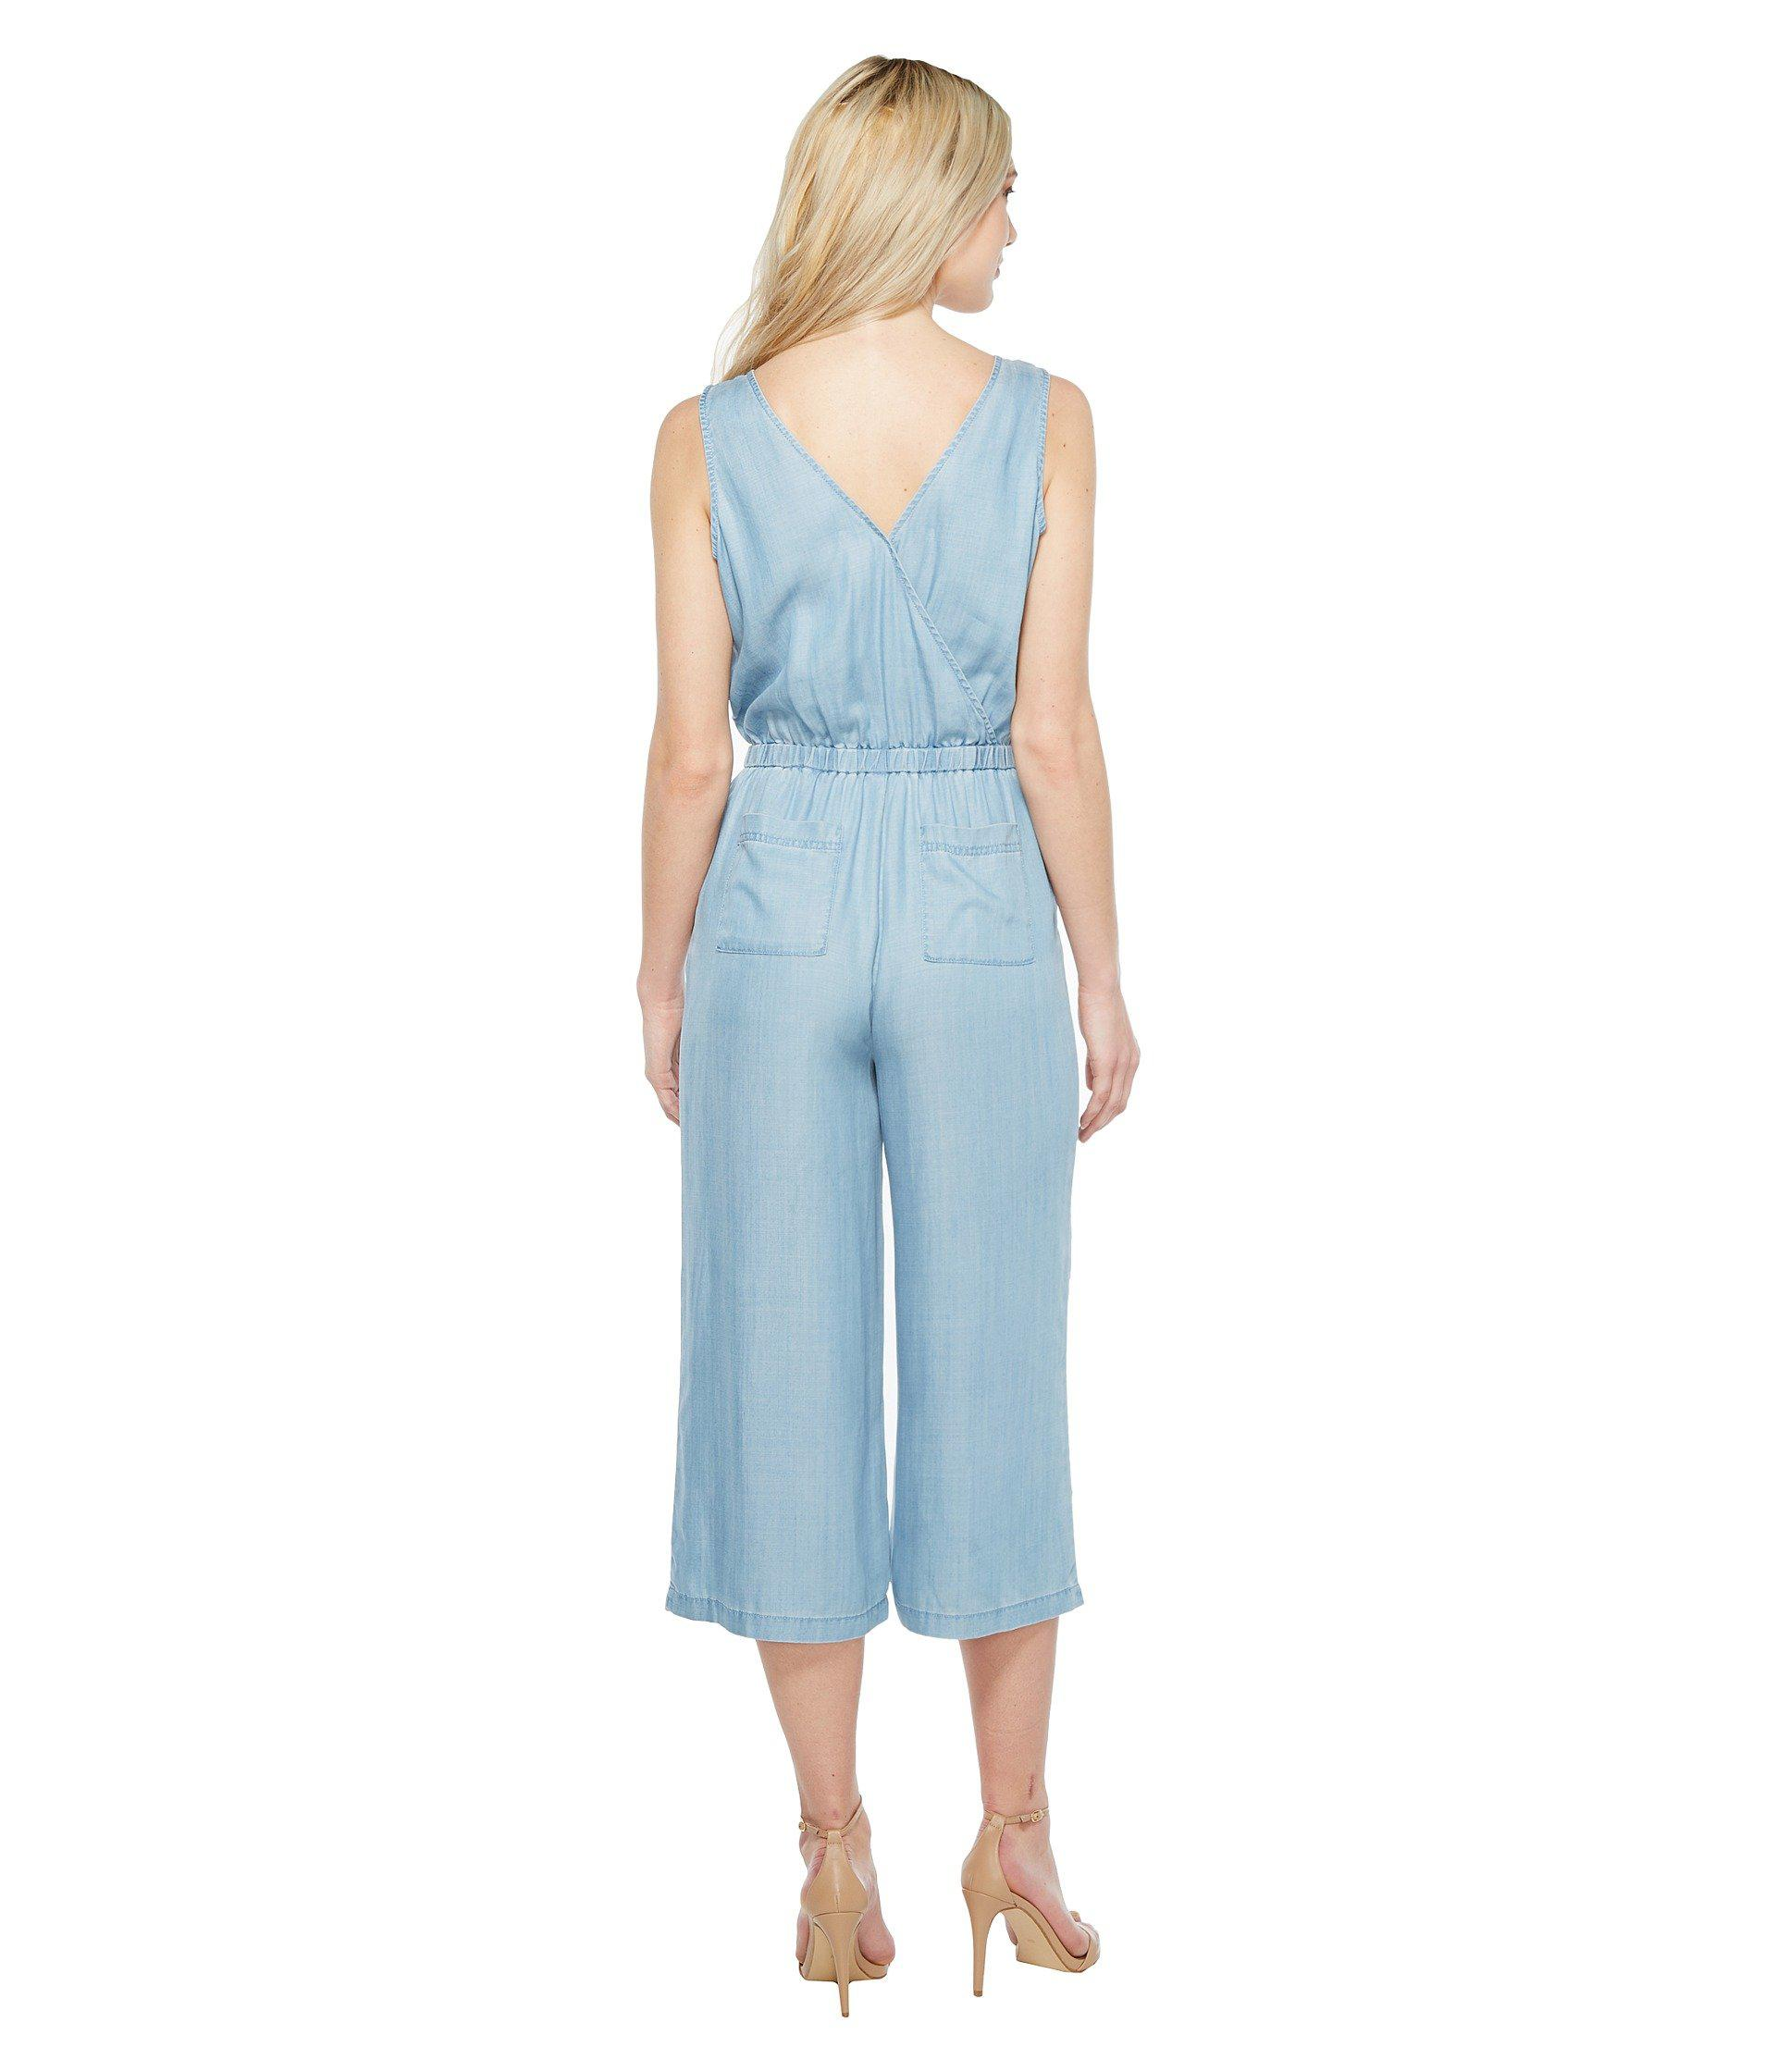 faa9144e8aa6 Lyst - Two By Vince Camuto Sleeveless Wrap Top Cropped Jumpsuit in Blue